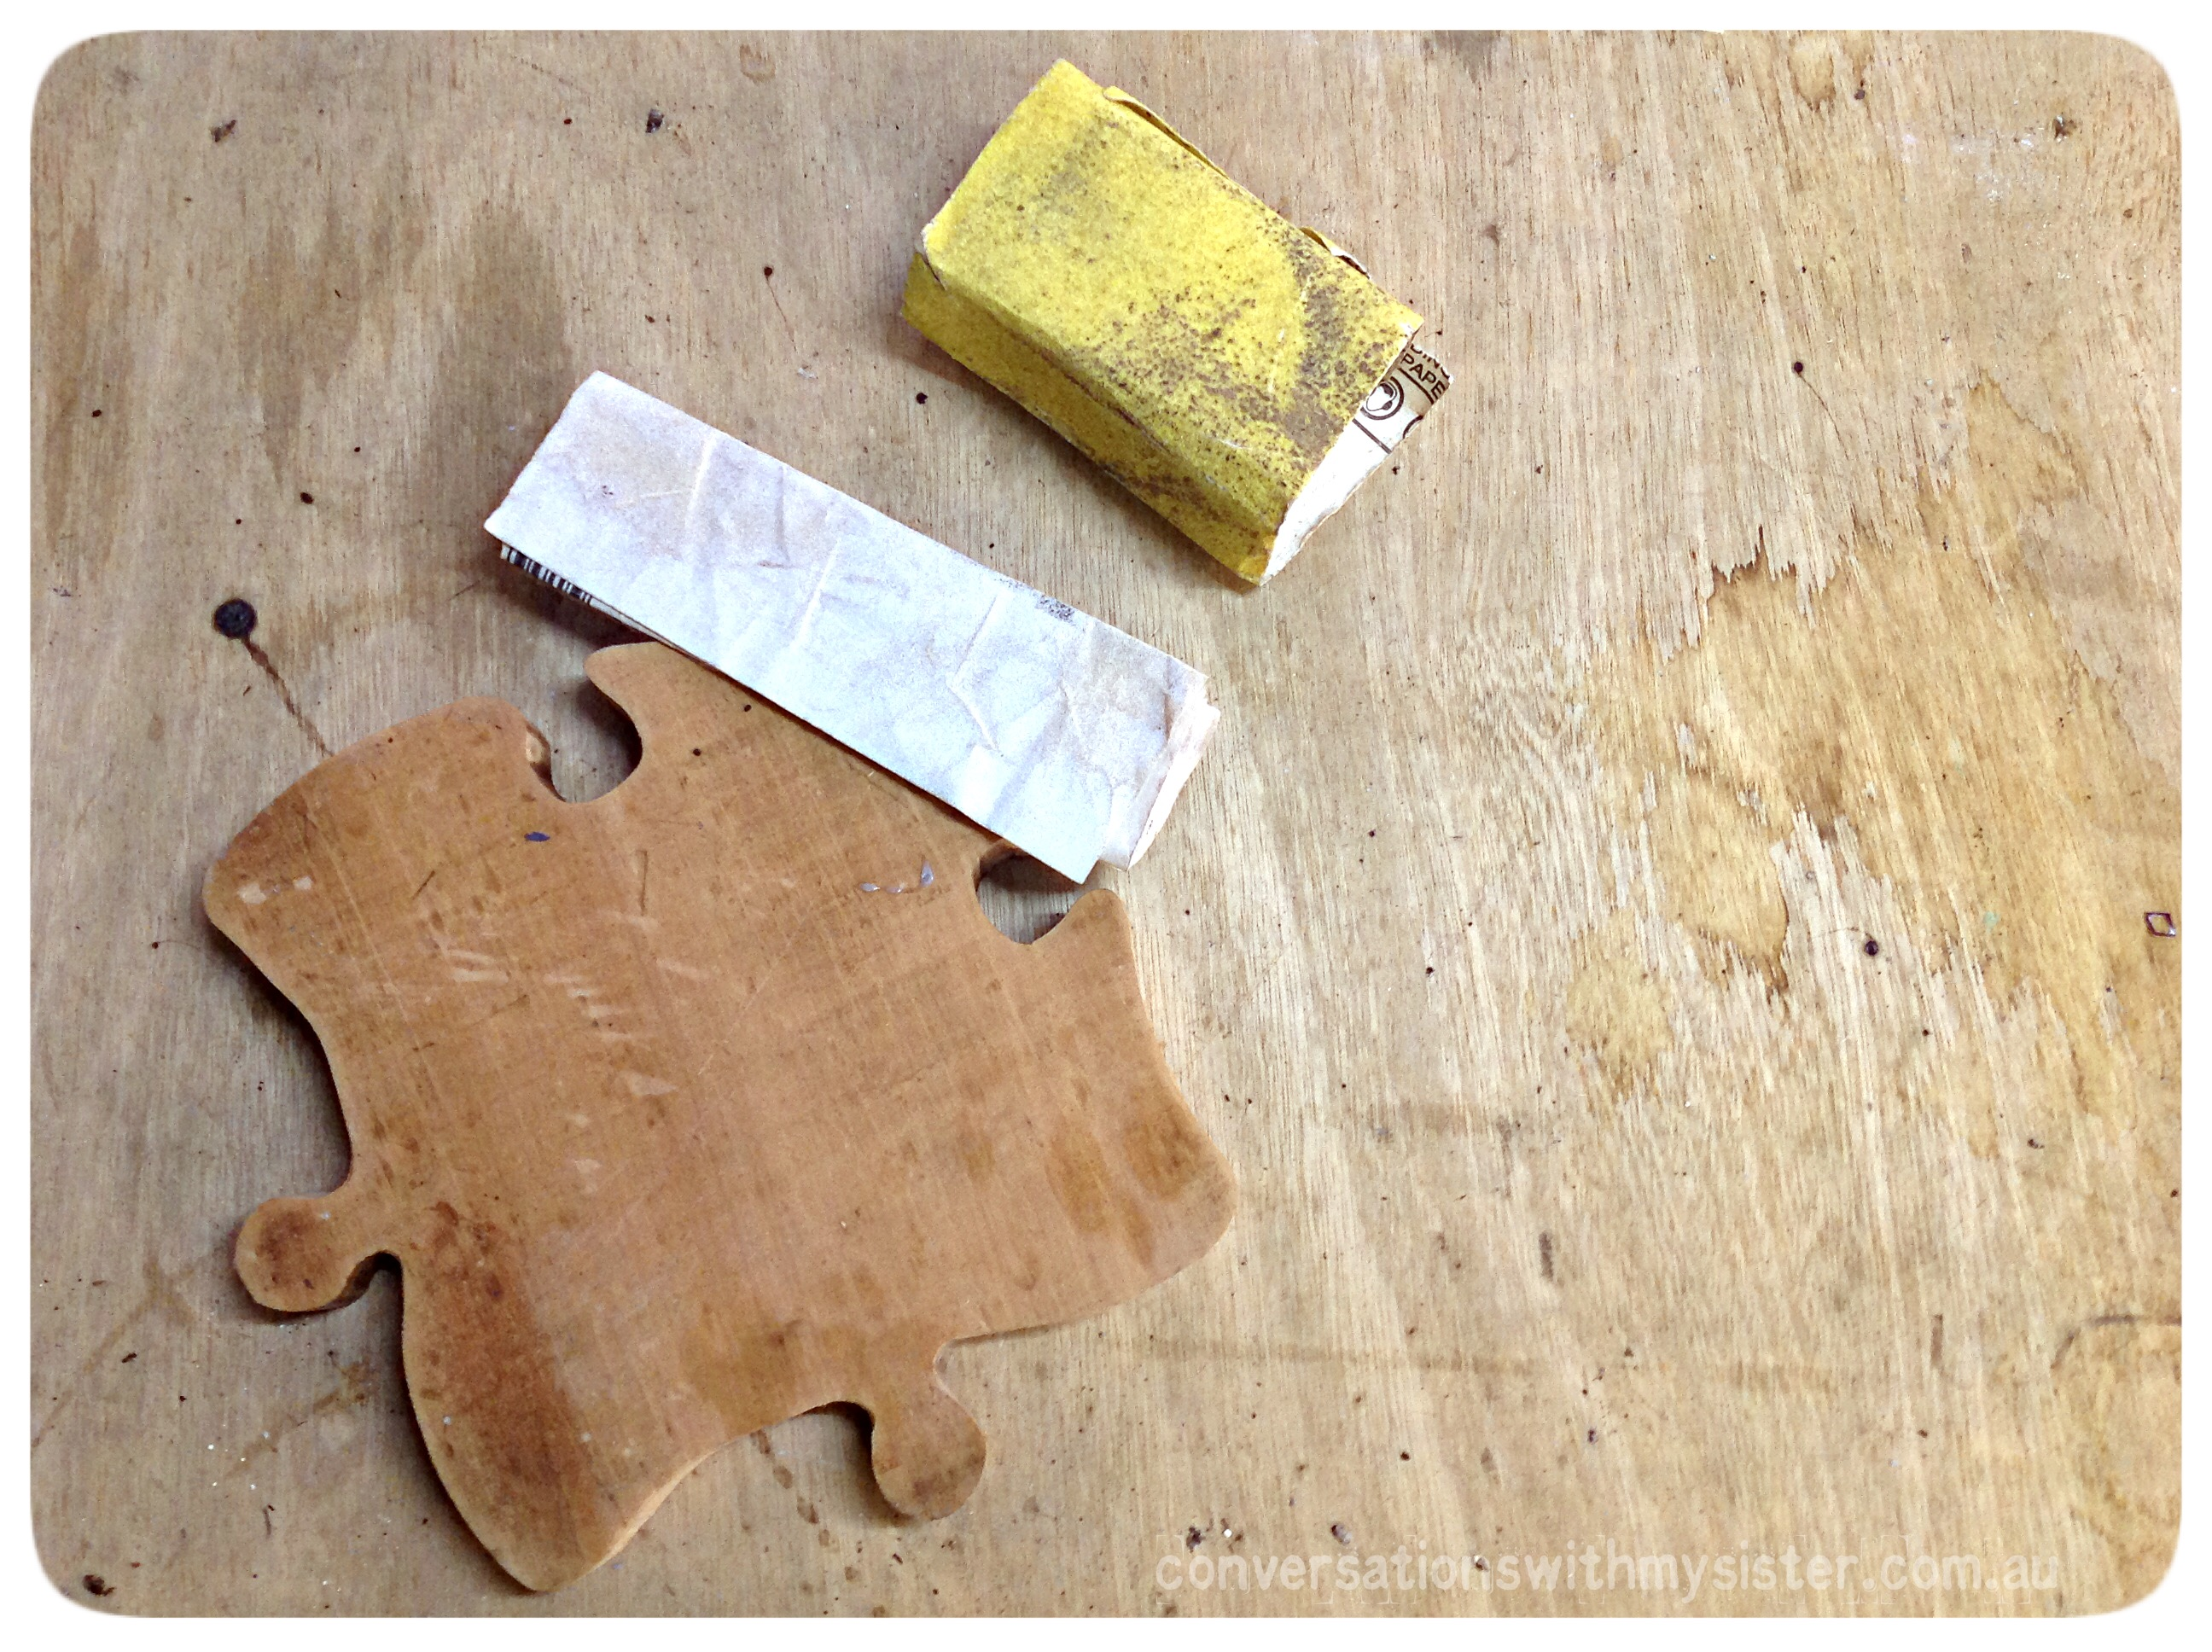 #DIY Jigsaw Piece Plate – Out of the Man Cave_conversationswithmysister.com.au